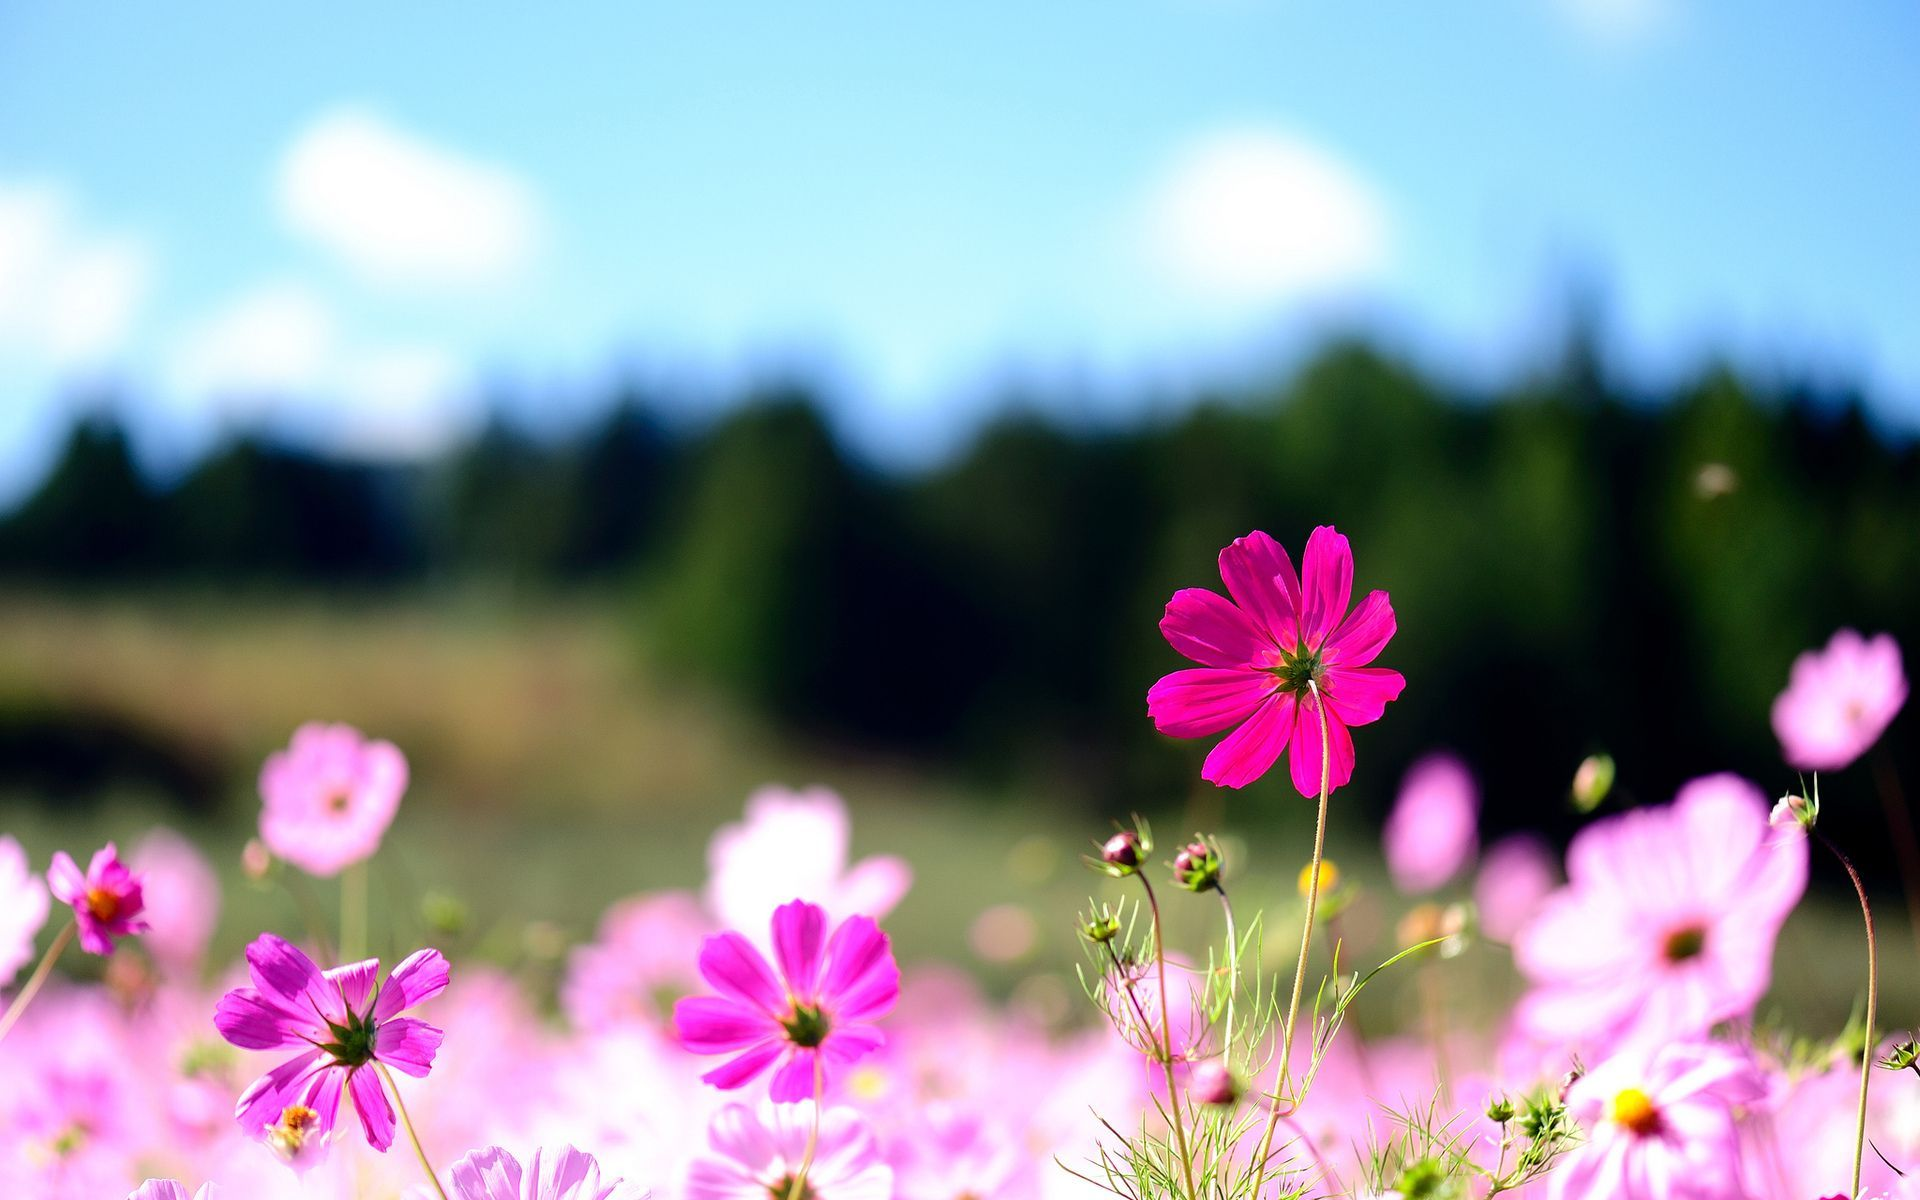 Flower Desktop Background Hd Wallpapers Hd Backgrounds Tumblr